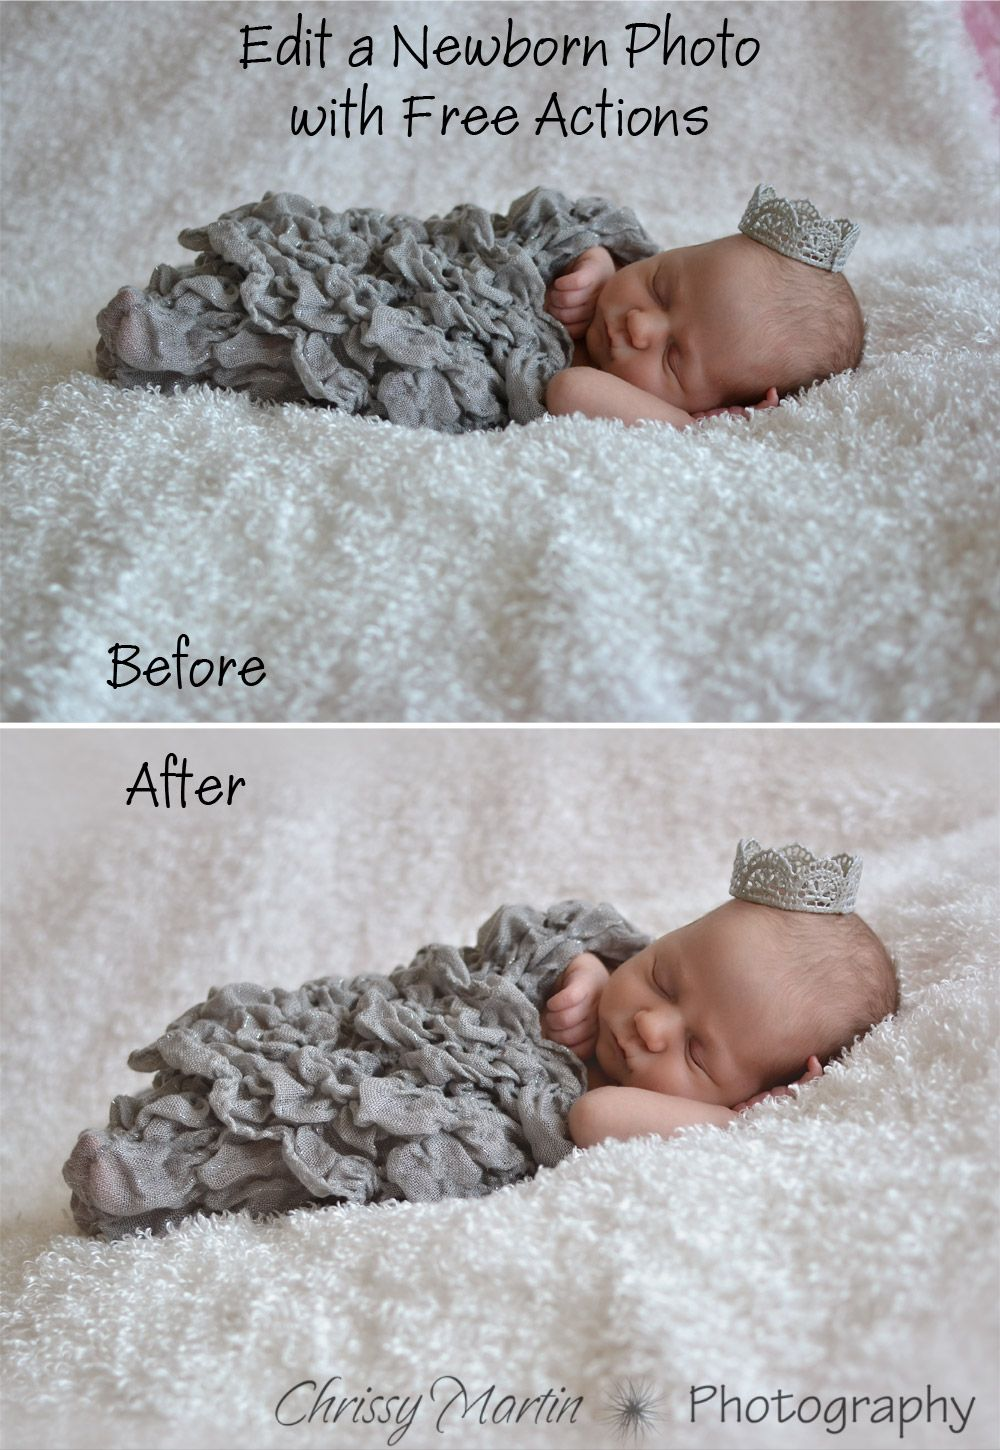 Edit a newborn photo with free actions in photoshop elements chrissy martin photography